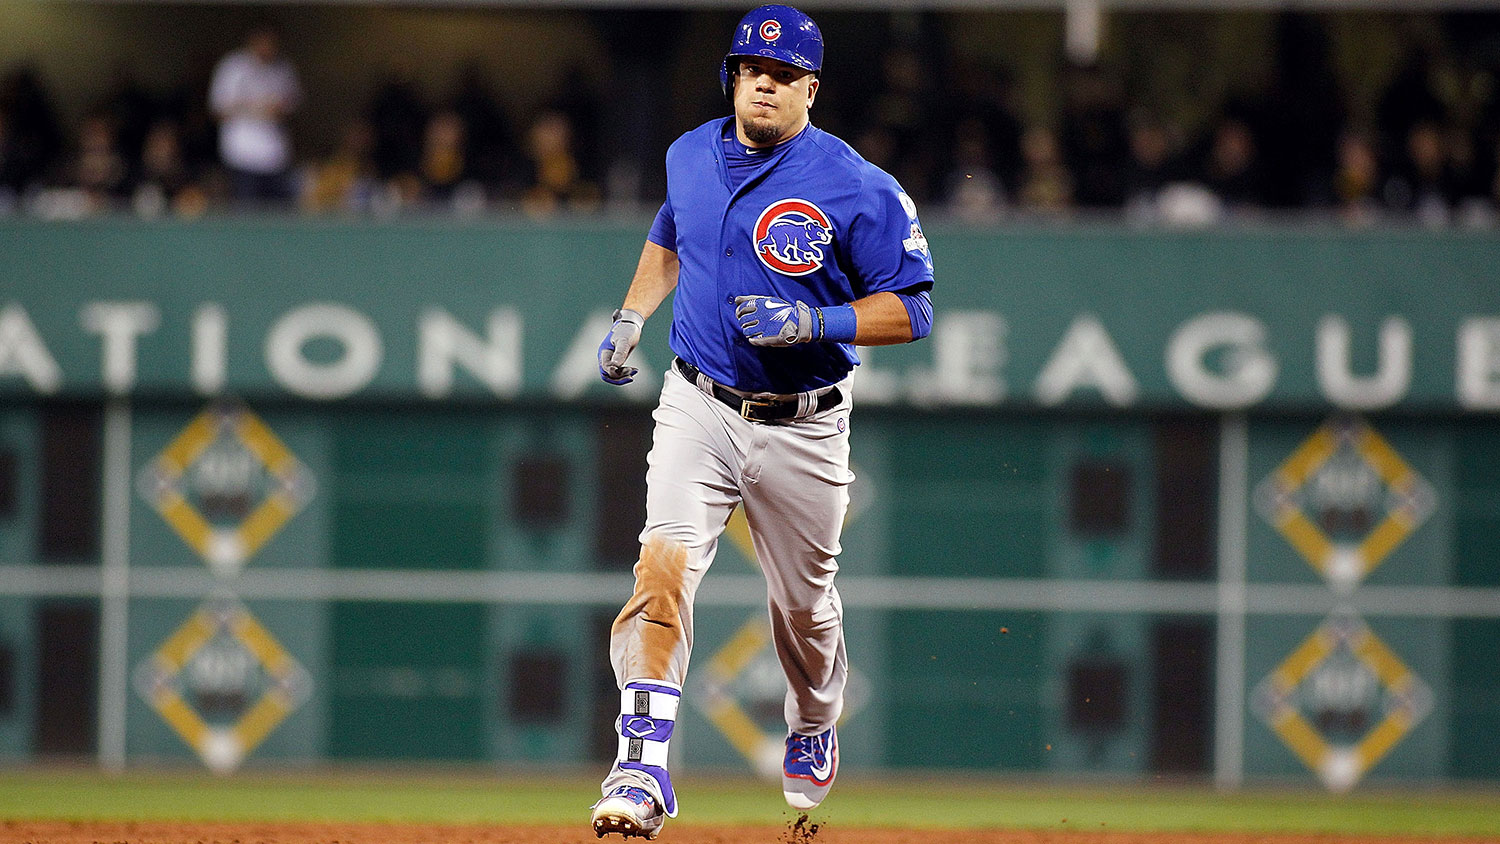 This is Kyle Schwarber. Baseballs are scared of him.